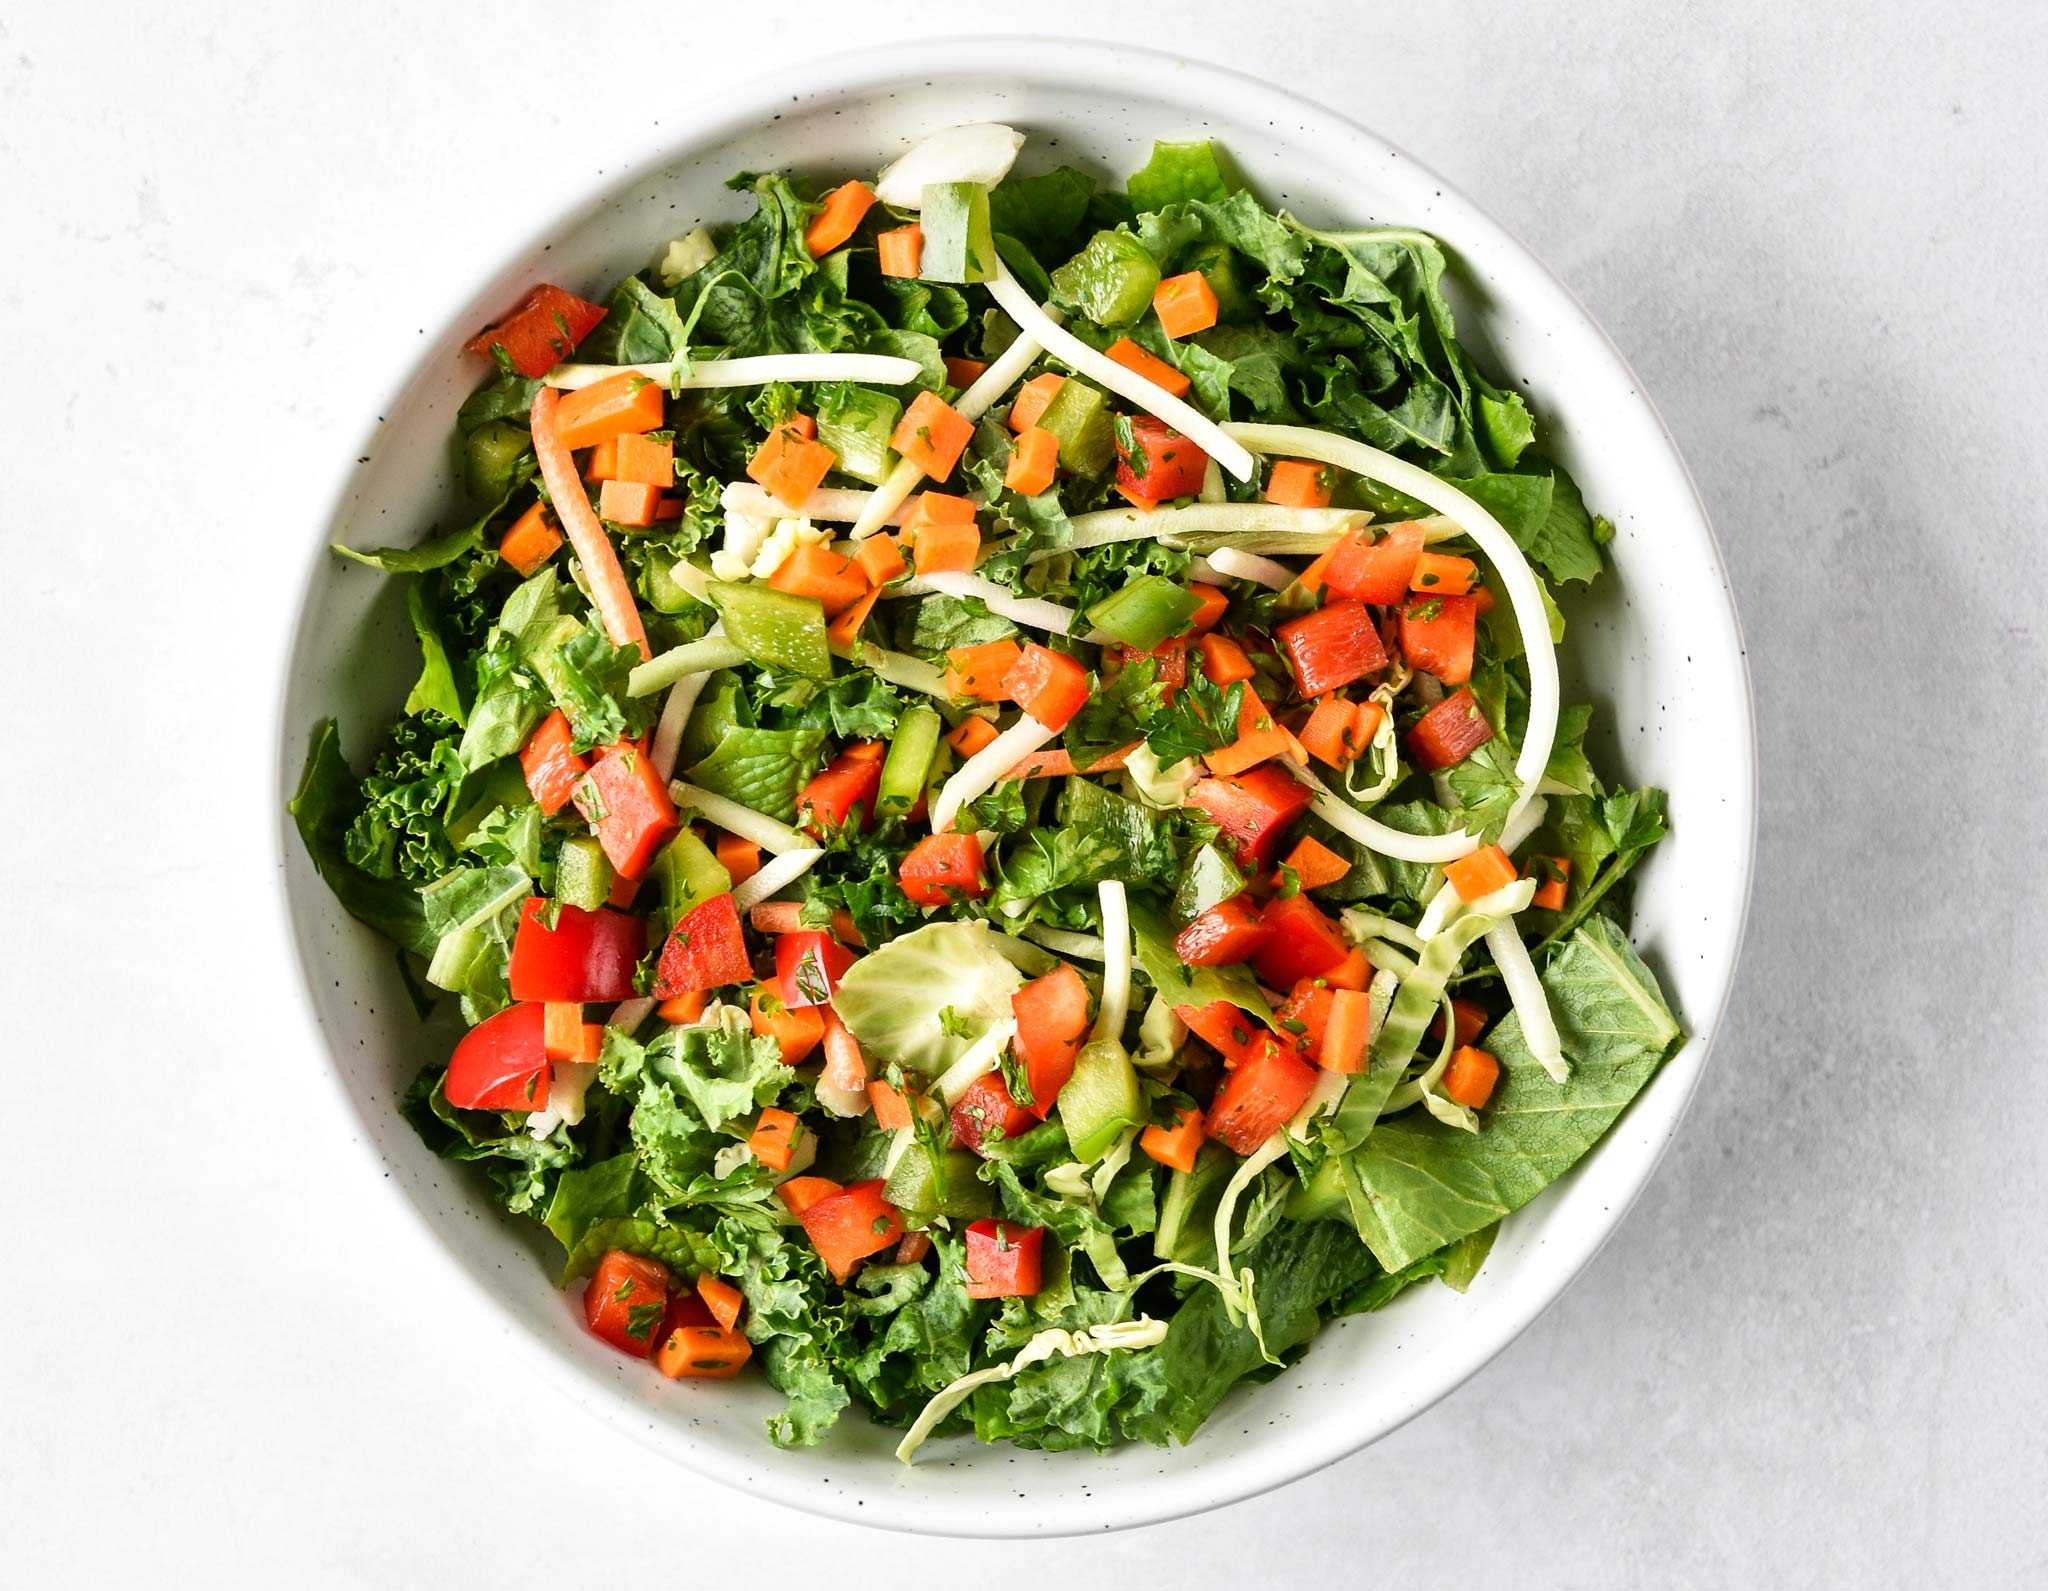 kale salad with vegetable confetti on top